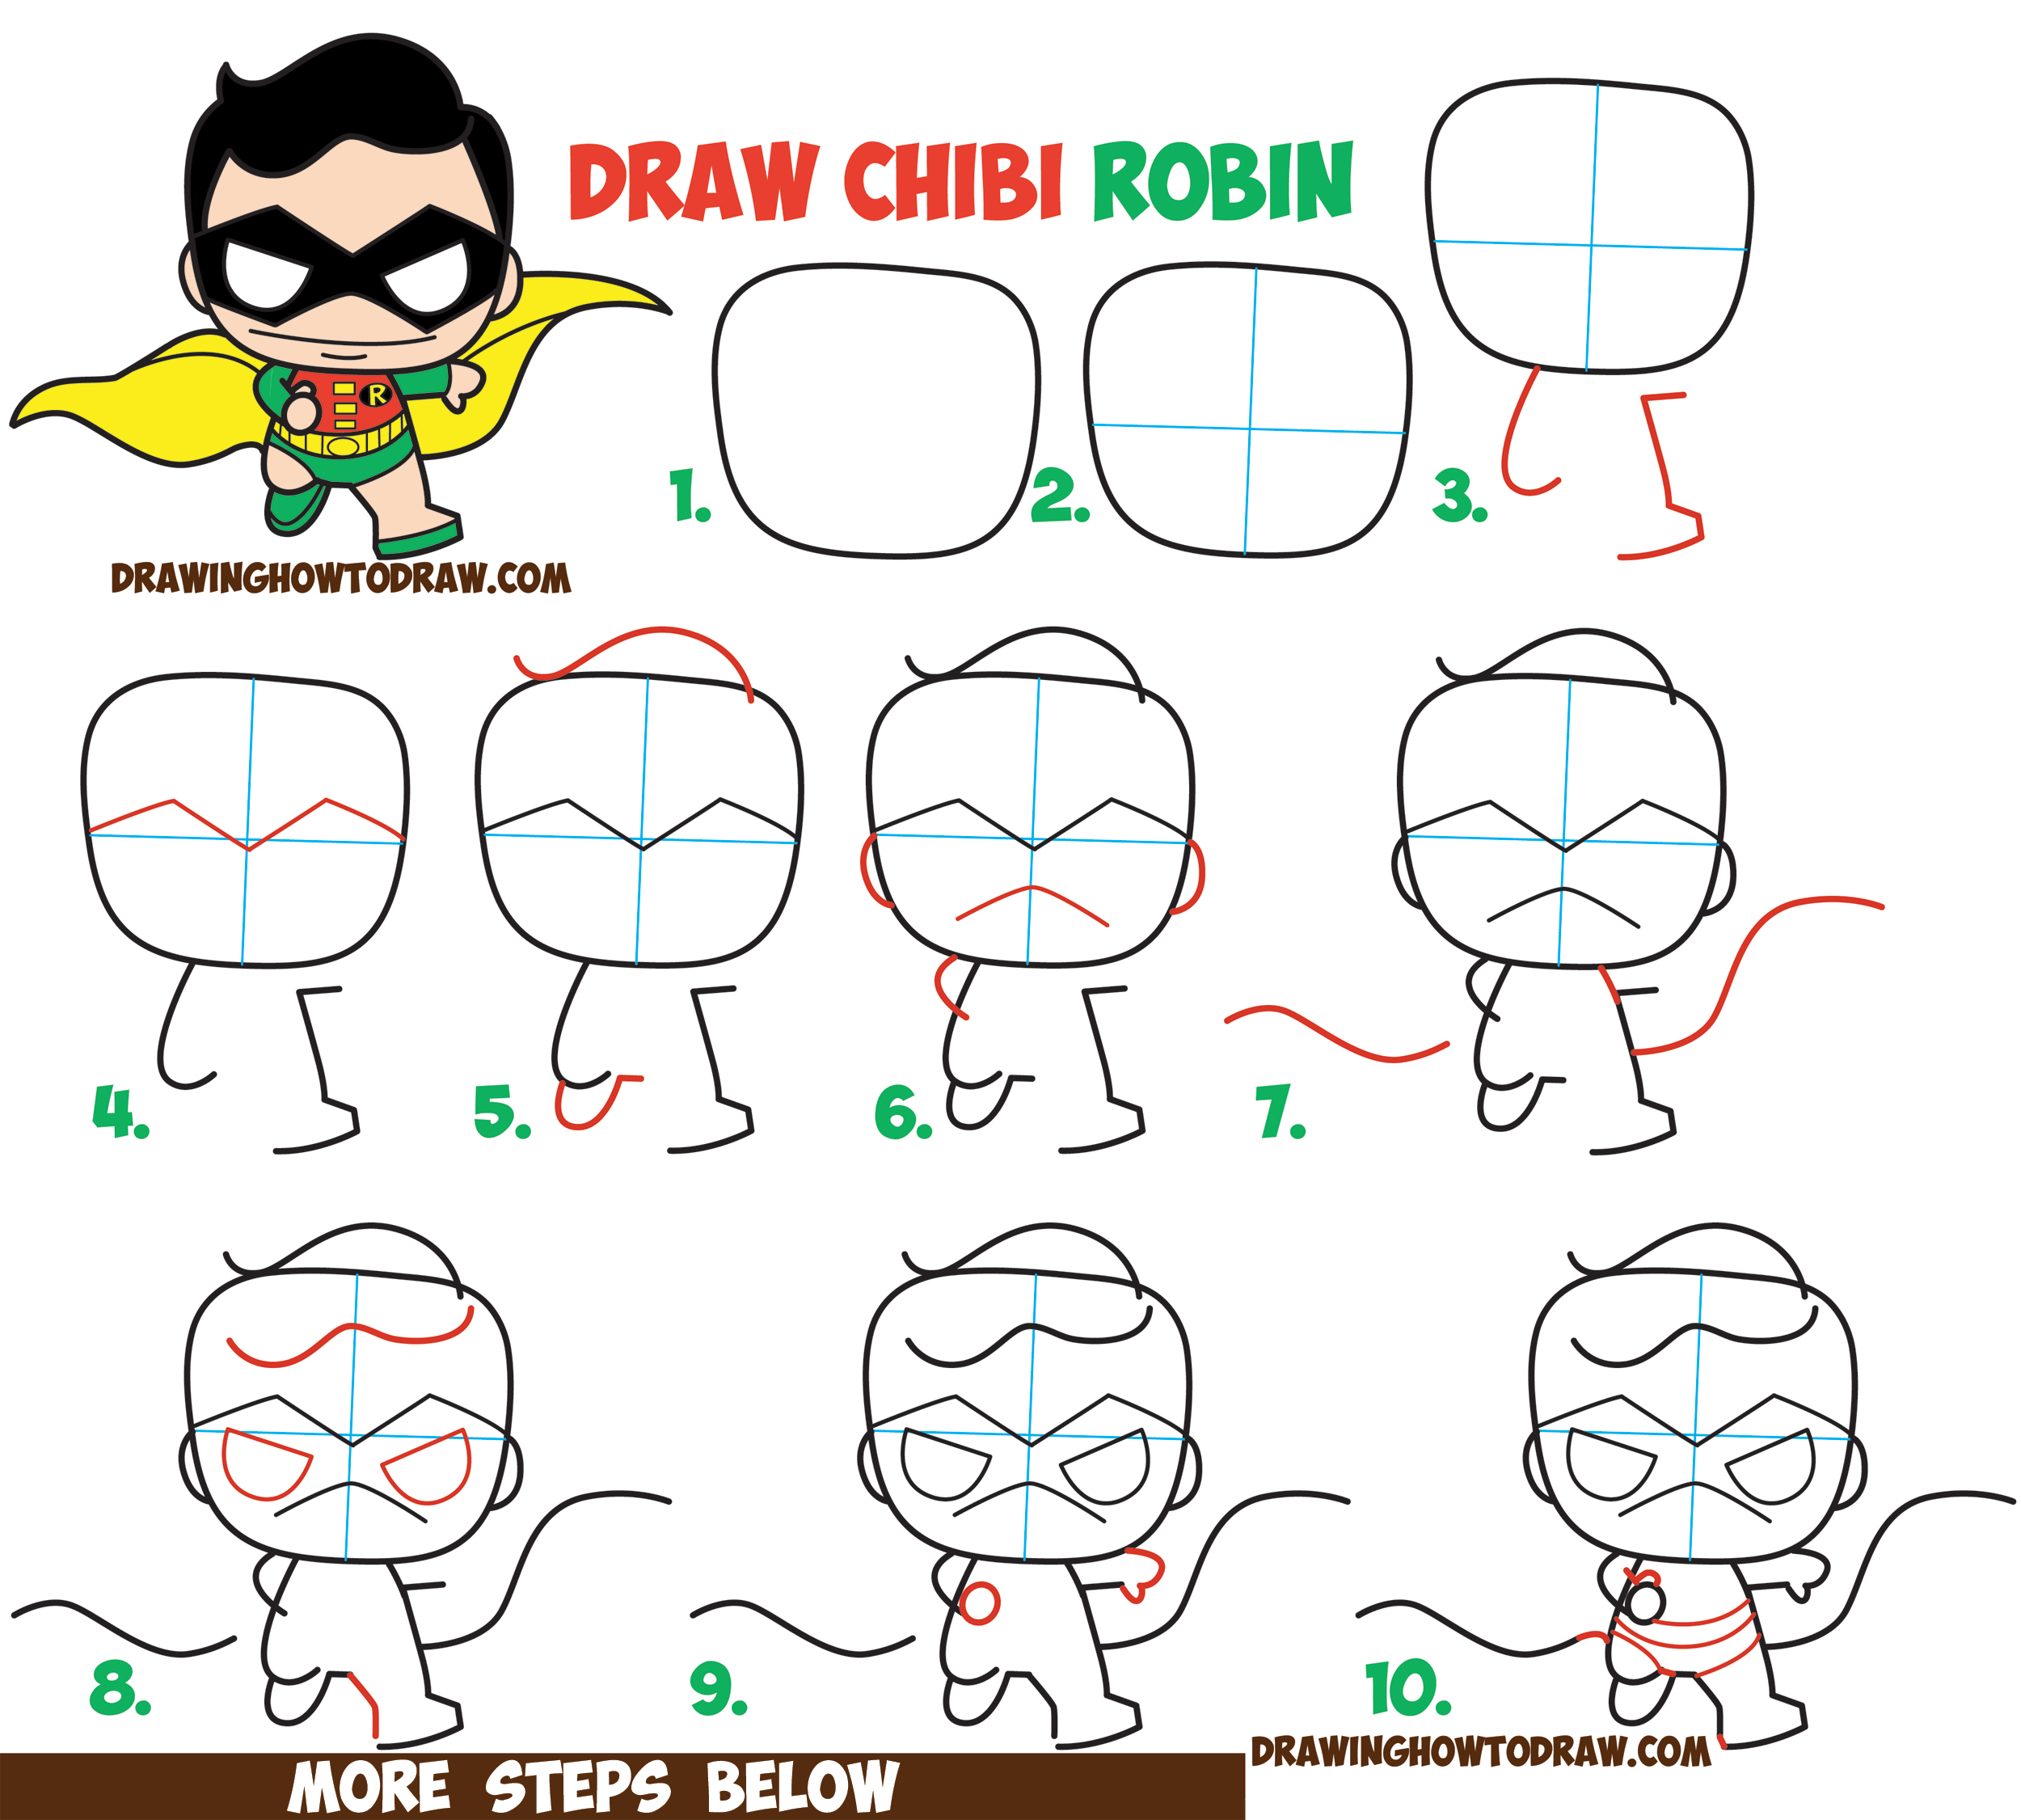 How to Draw Cute / Kawaii / Chibi Robin from DC Comics' Batman & Robin in Easy Steps Drawing Lesson for Kids